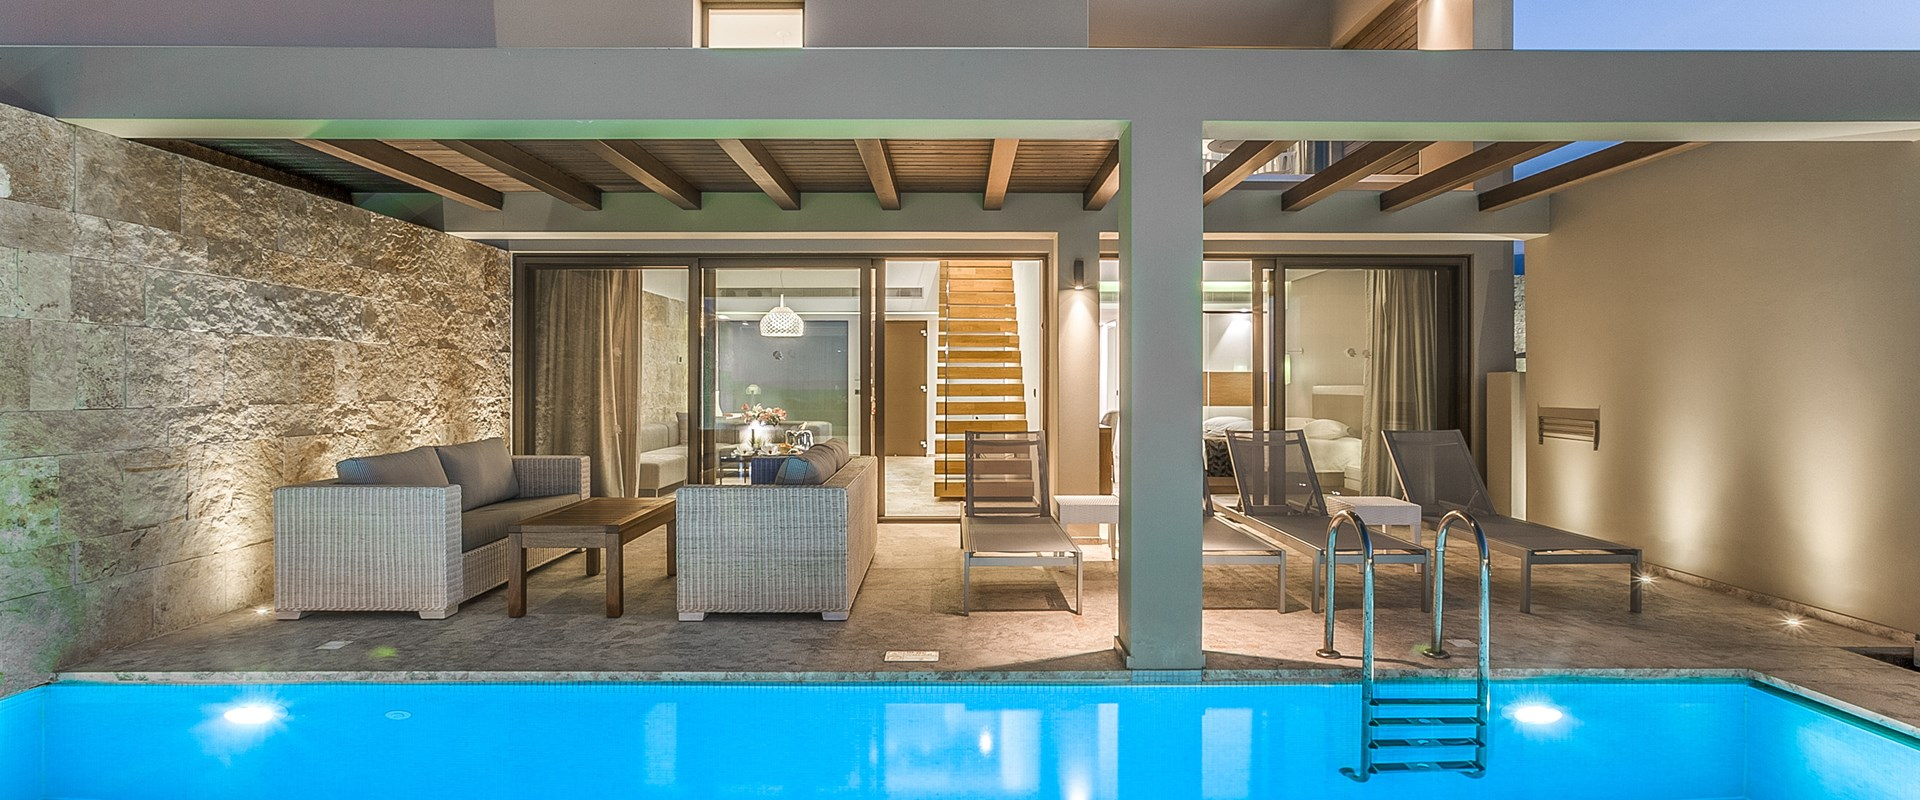 Rooms and Suites at Astir Odysseus